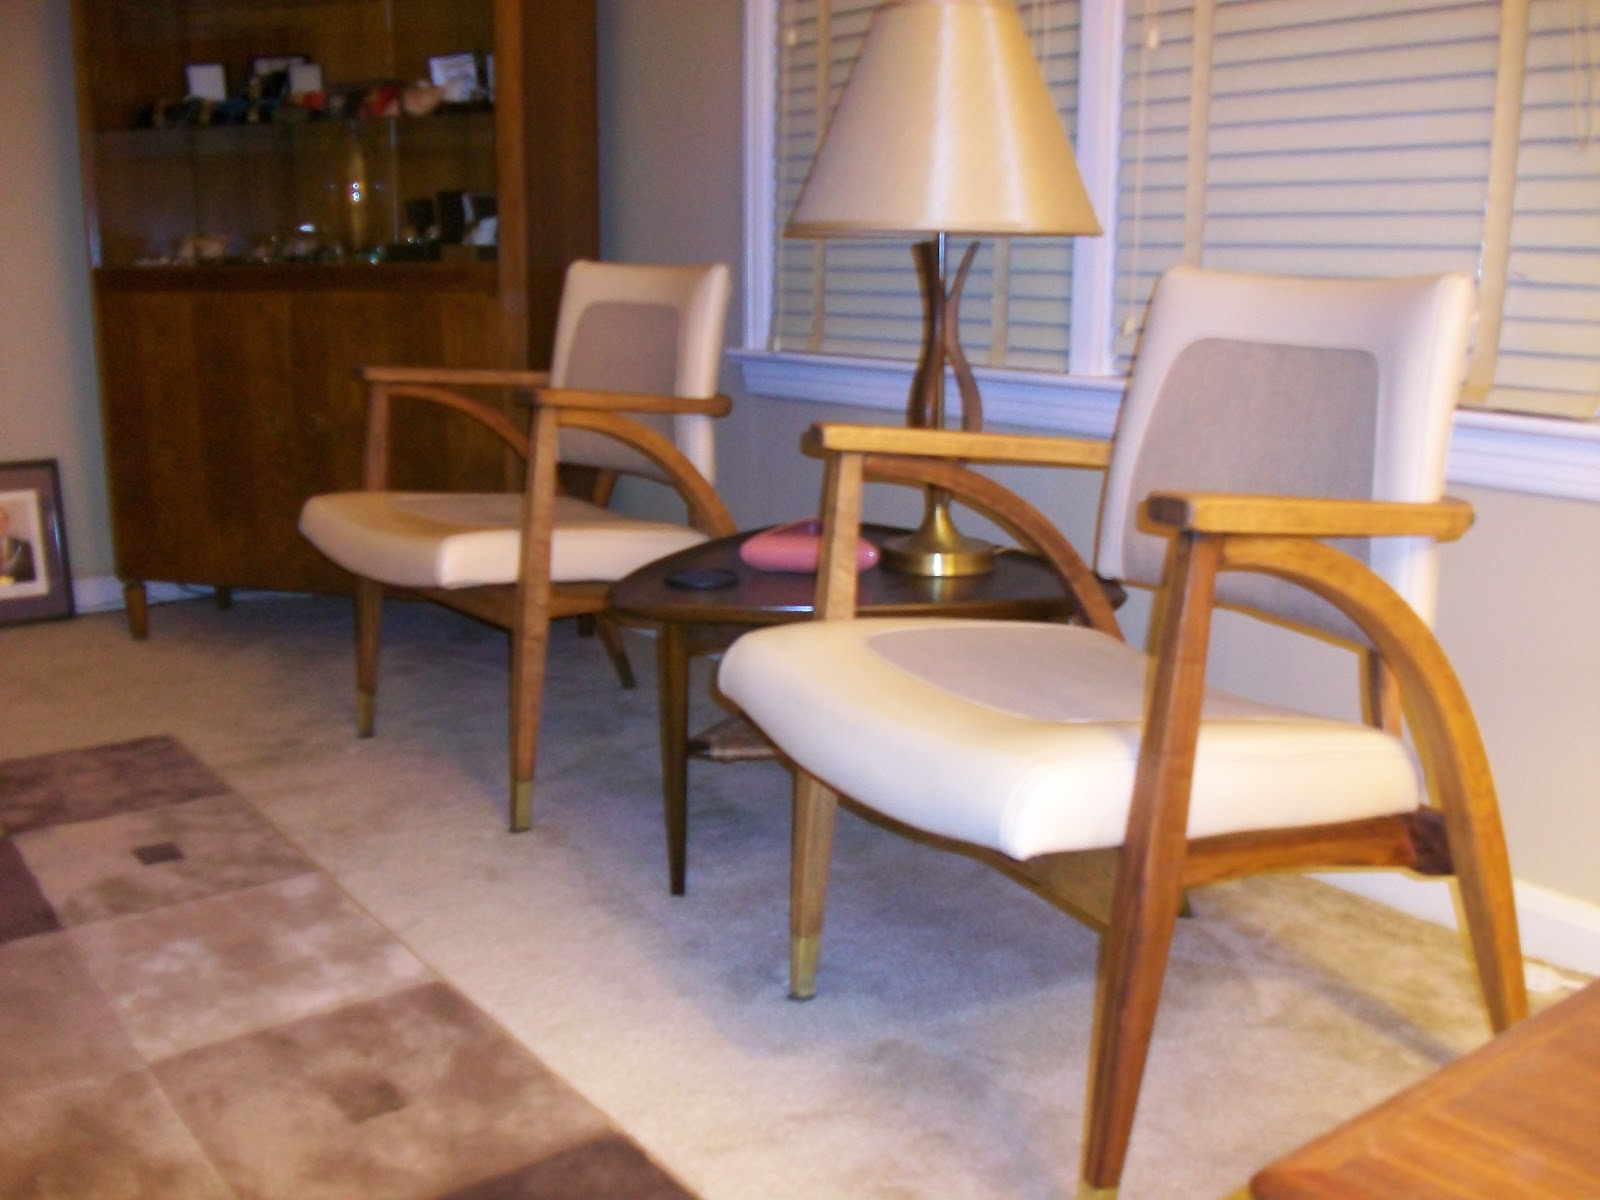 Nice Vintage Chairs From Boling Chair Co. North Carolina Circa 1949.